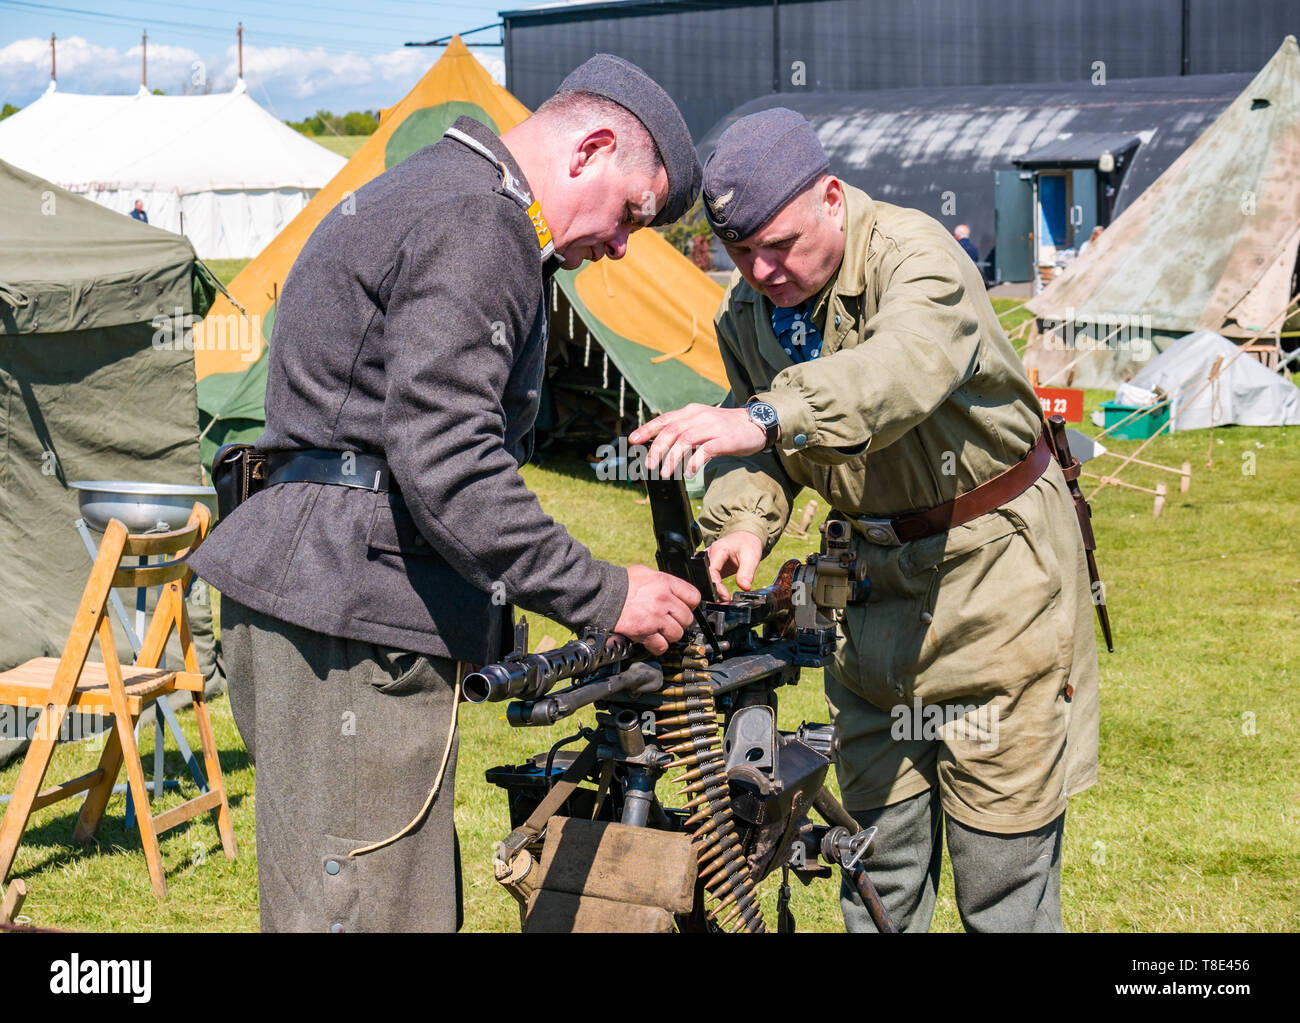 Museum of Flight, East Fortune, East Lothian, Scotland, UK 12th May, 2019. Wartime Experience: A family day out with all things related to the World Wars including a replica of a second world war German army  camp and military equipment,. Men dressed in German military uniform with a machine gun - Stock Image